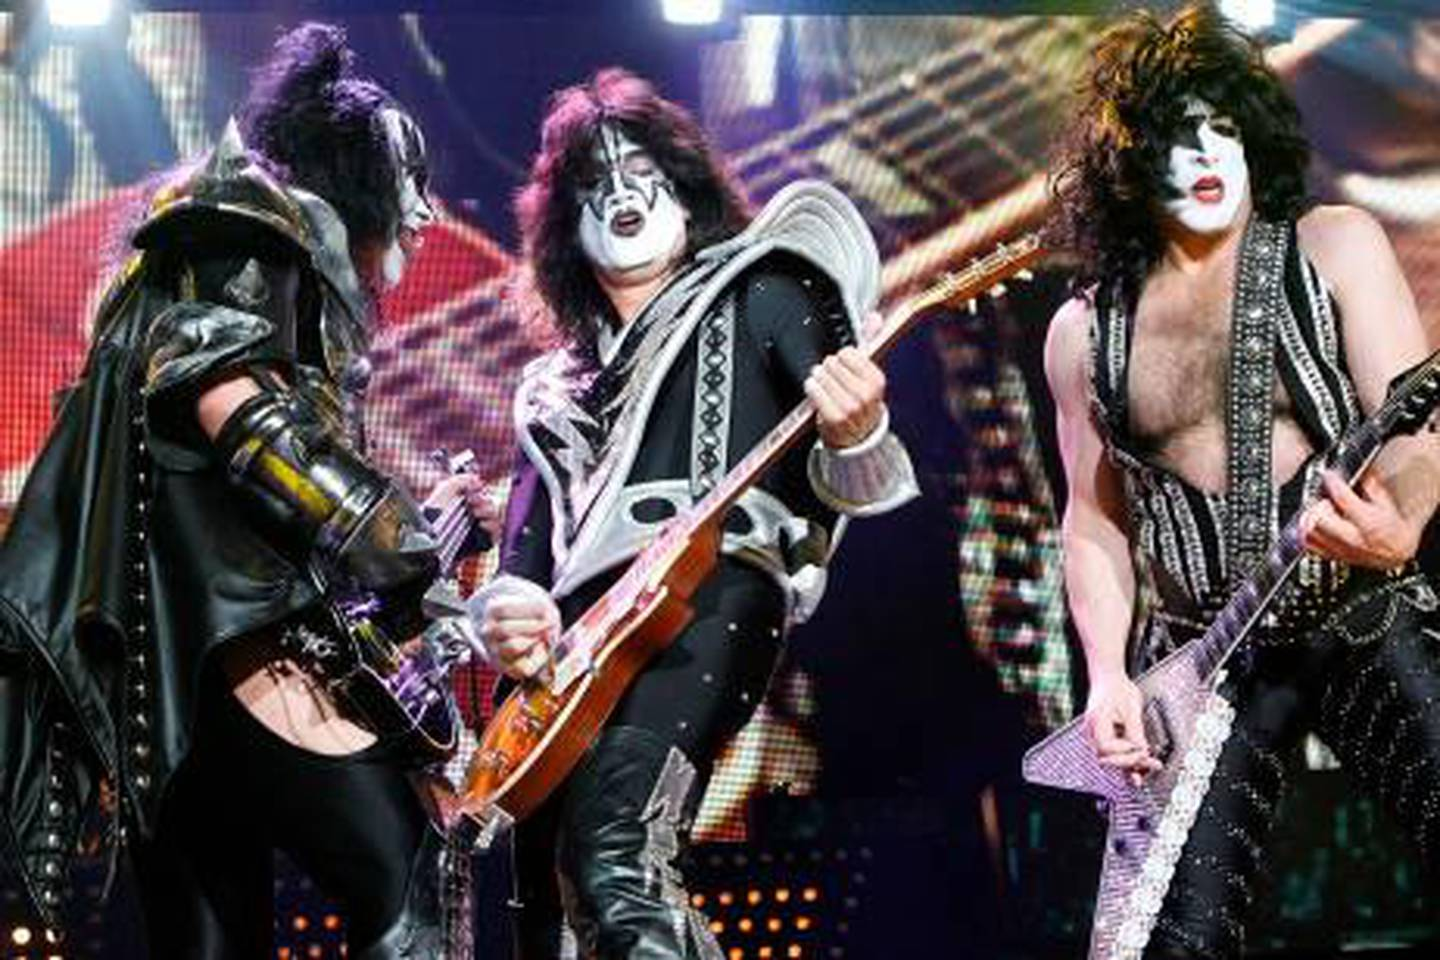 LONDON, UNITED KINGDOM - MAY 12: Gene Simmons, Tommy Thayer and Paul Stanley of KISS perform at the Wembley Arena on May 12, 2010 in London, England. (Photo by Jo Hale/Getty Images)